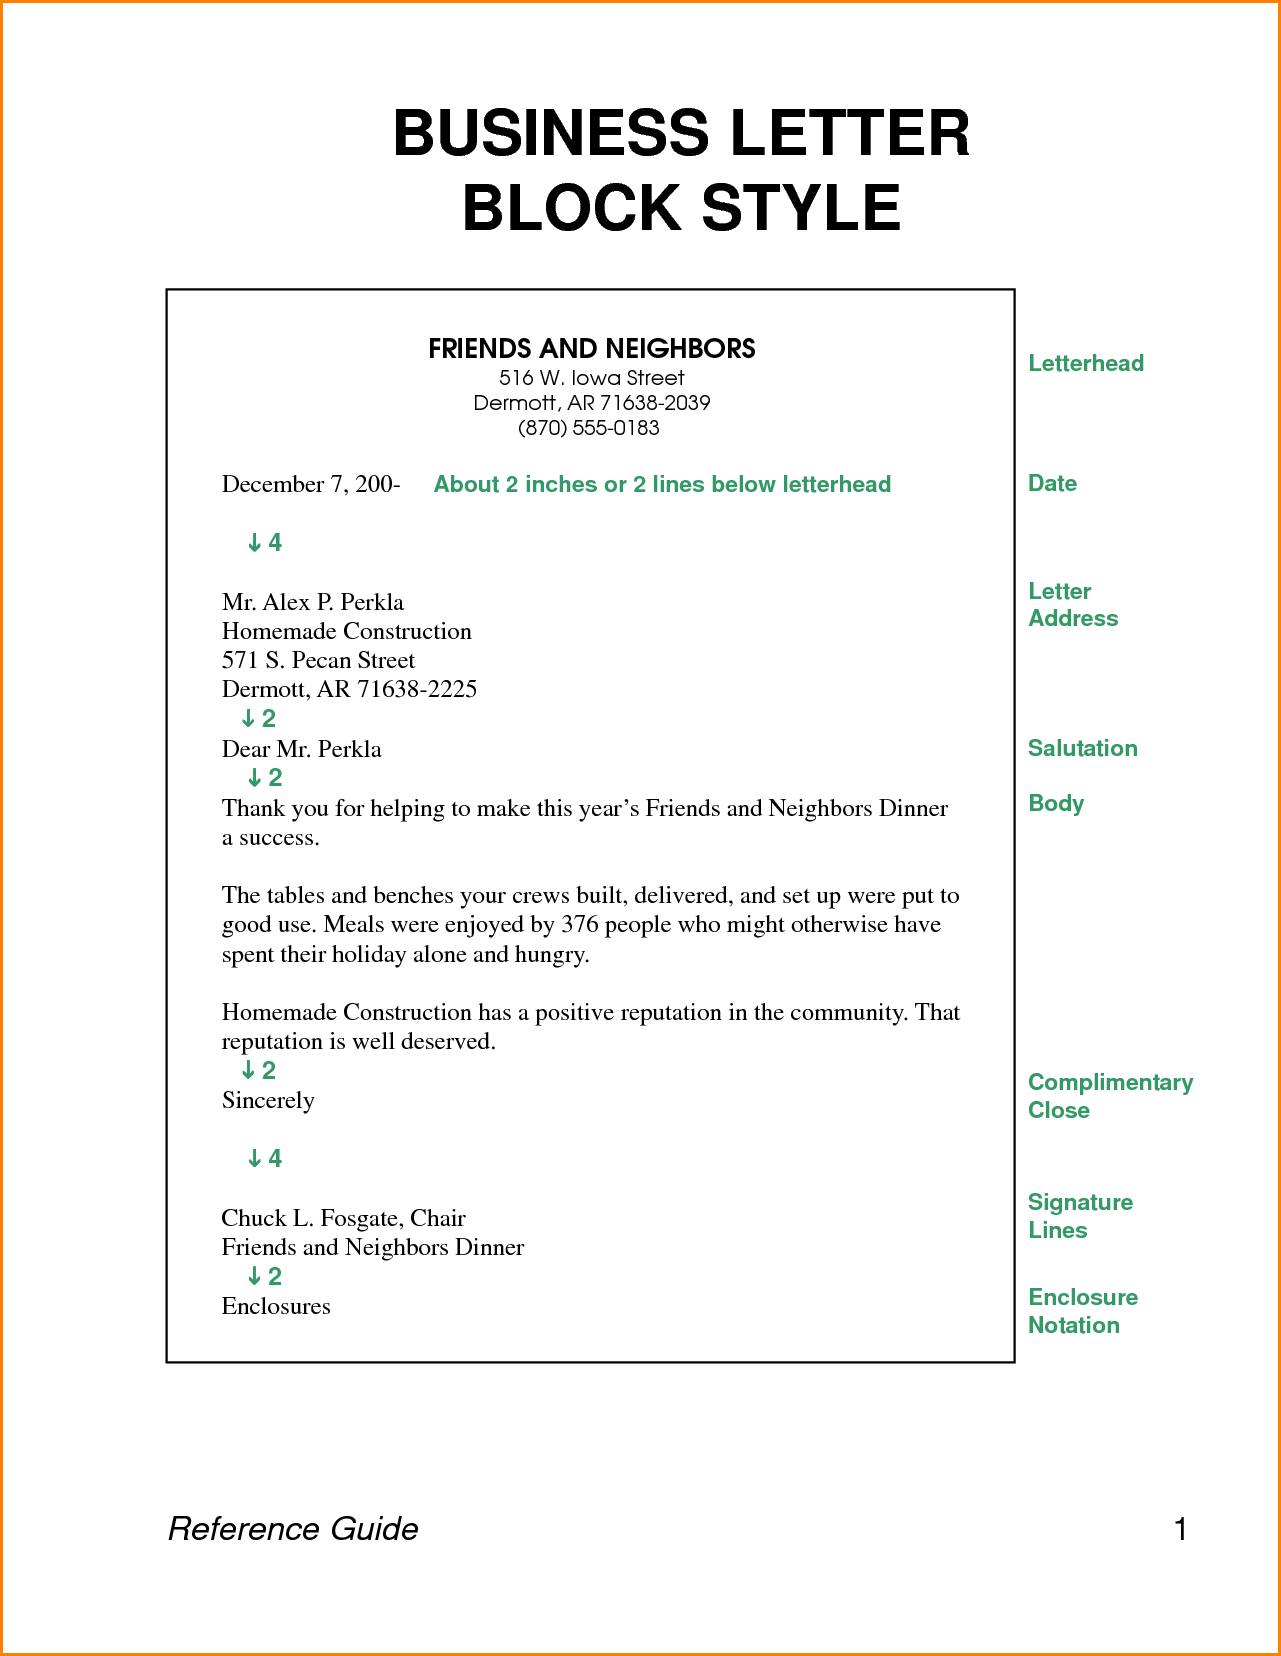 Business letter block style letters format download free documents business letter block style letters format download free documents pdf word wajeb Choice Image